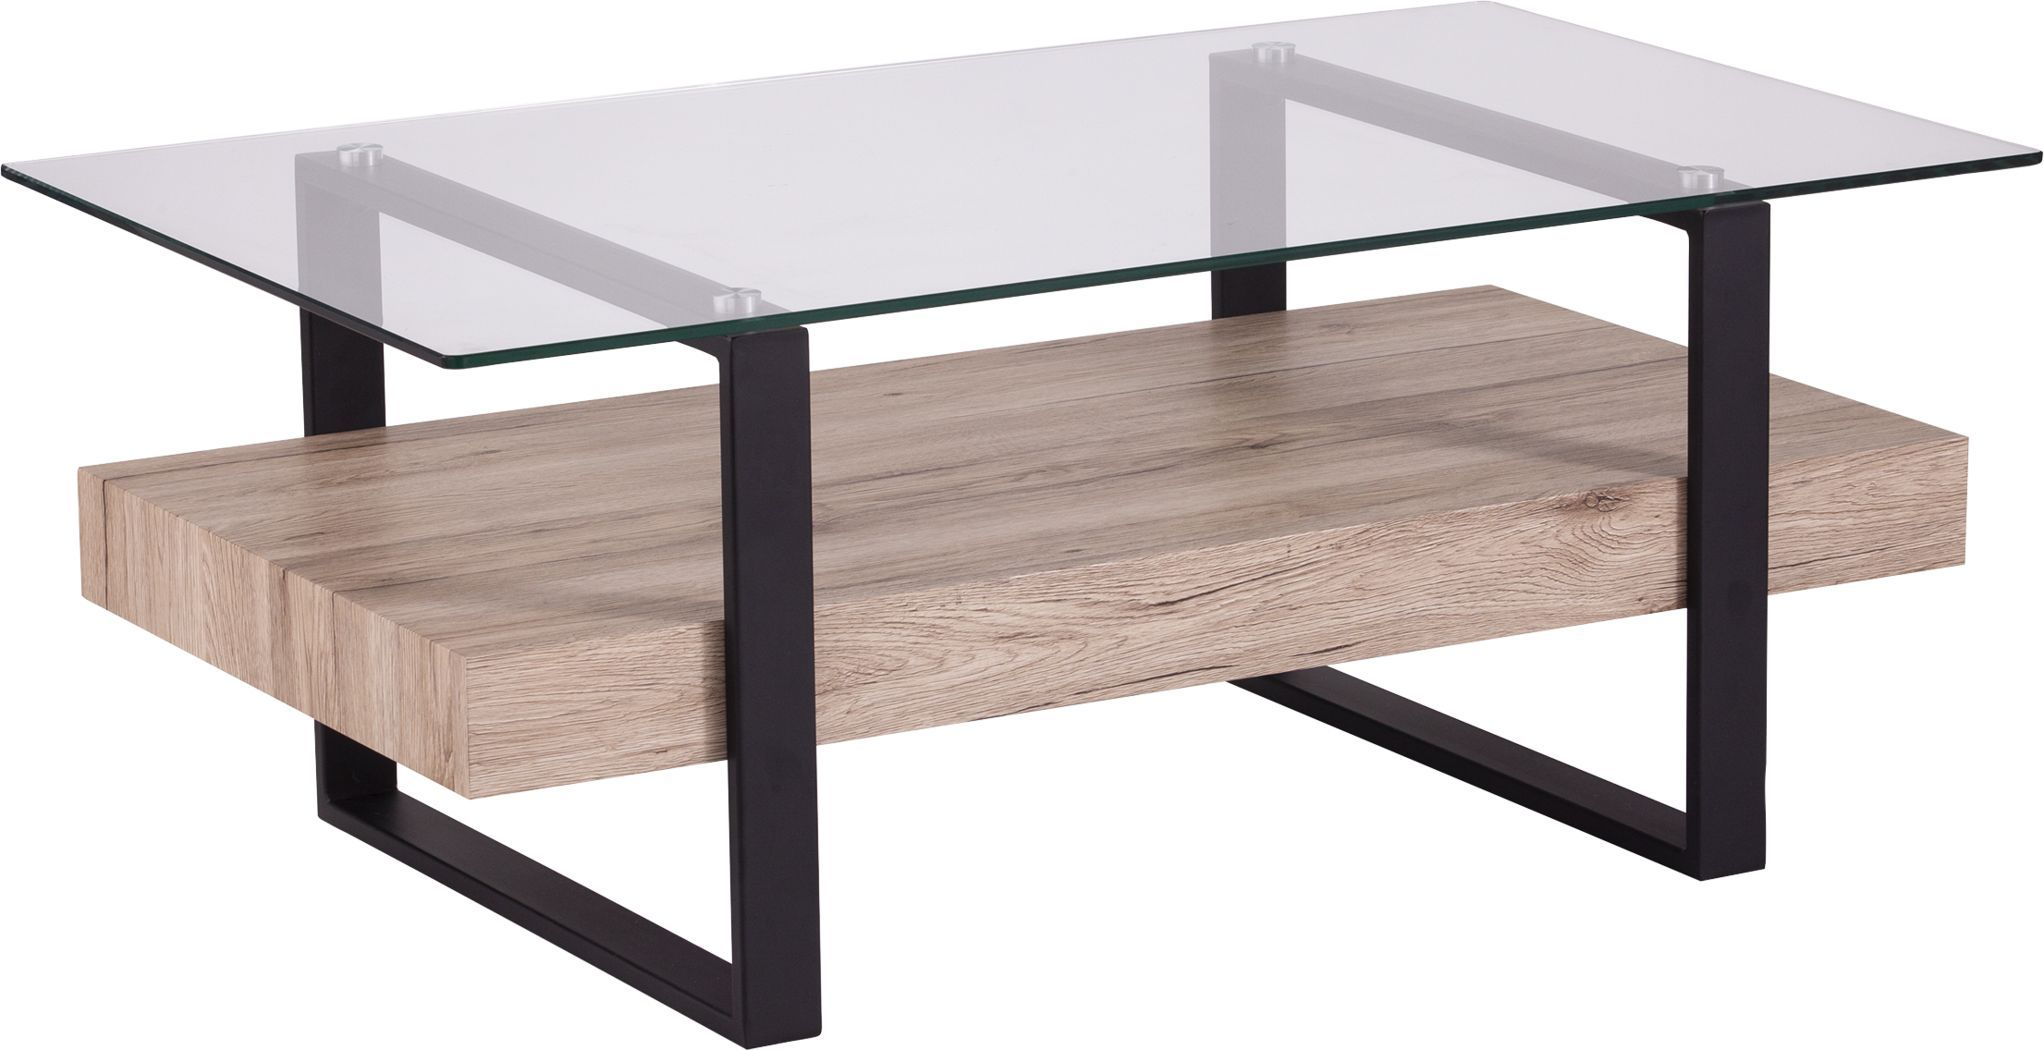 Lomax Way Natural Cocktail Table Coffee Table Black Furniture Living Room Living Room Table Sets [ 1050 x 2044 Pixel ]